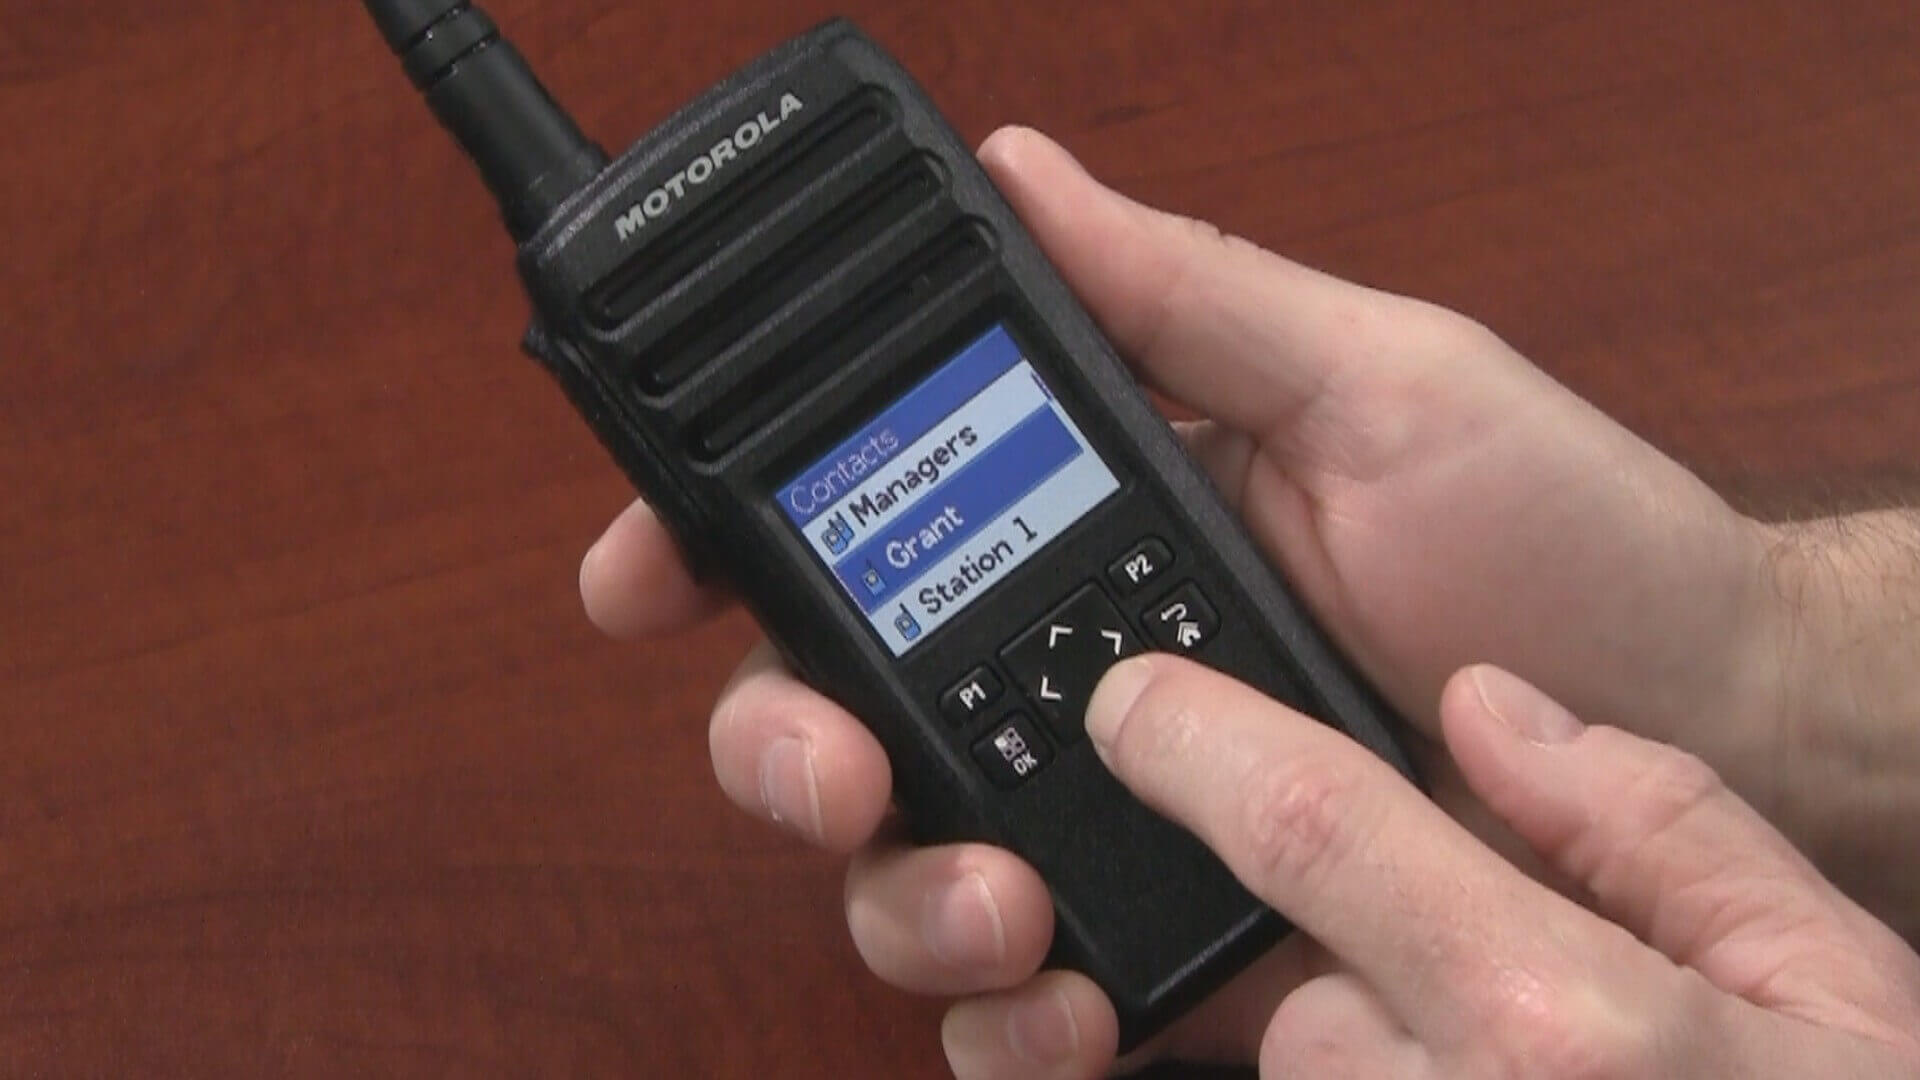 How to Program the Motorola DTR600 and DTR700 digital radios